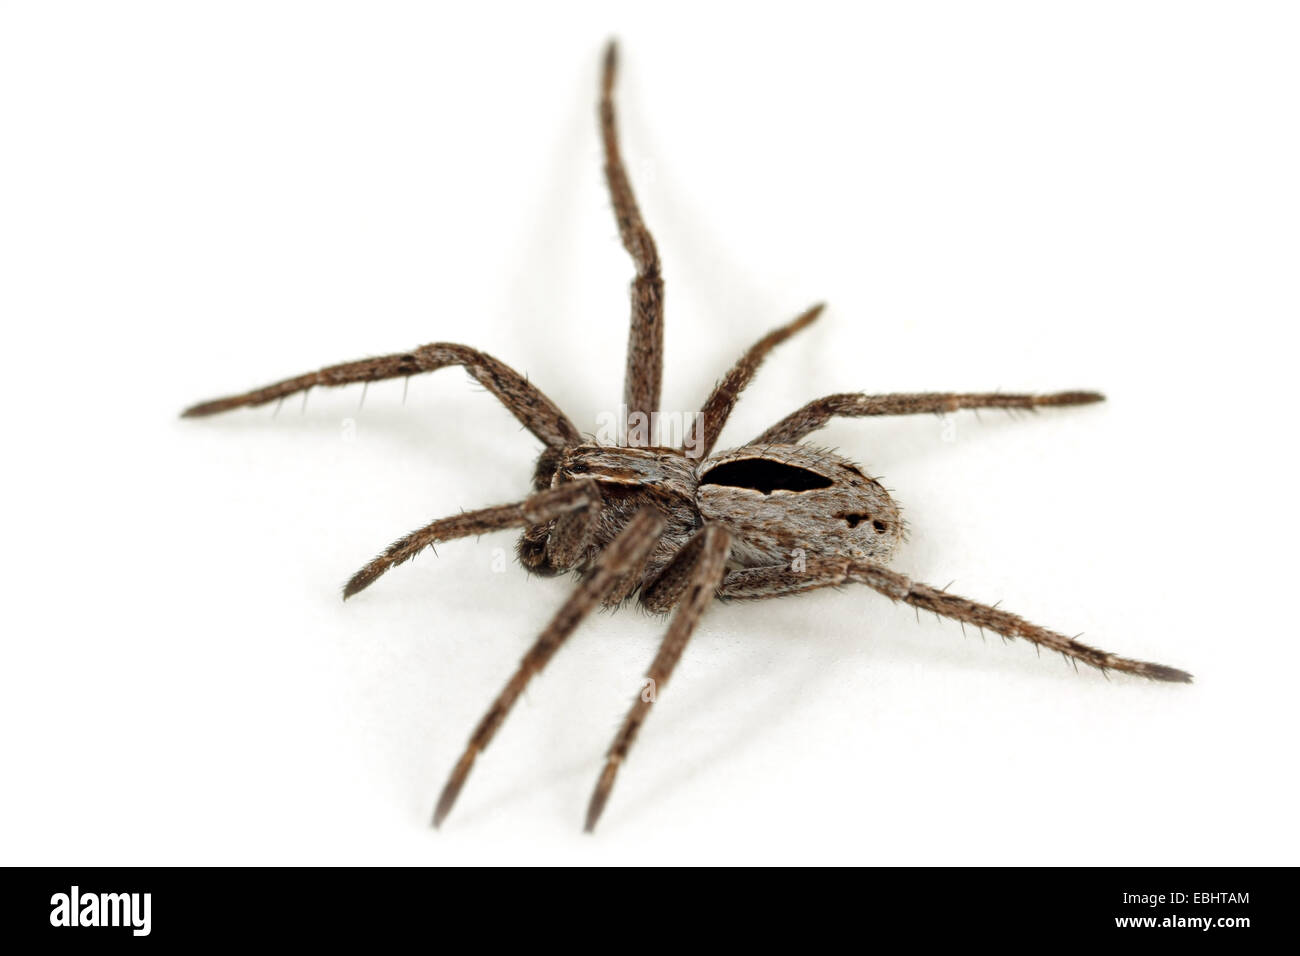 A juvenile male (Thanatus formicinus) spider on white background. This spider is part of the family Philodromidae, - Stock Image